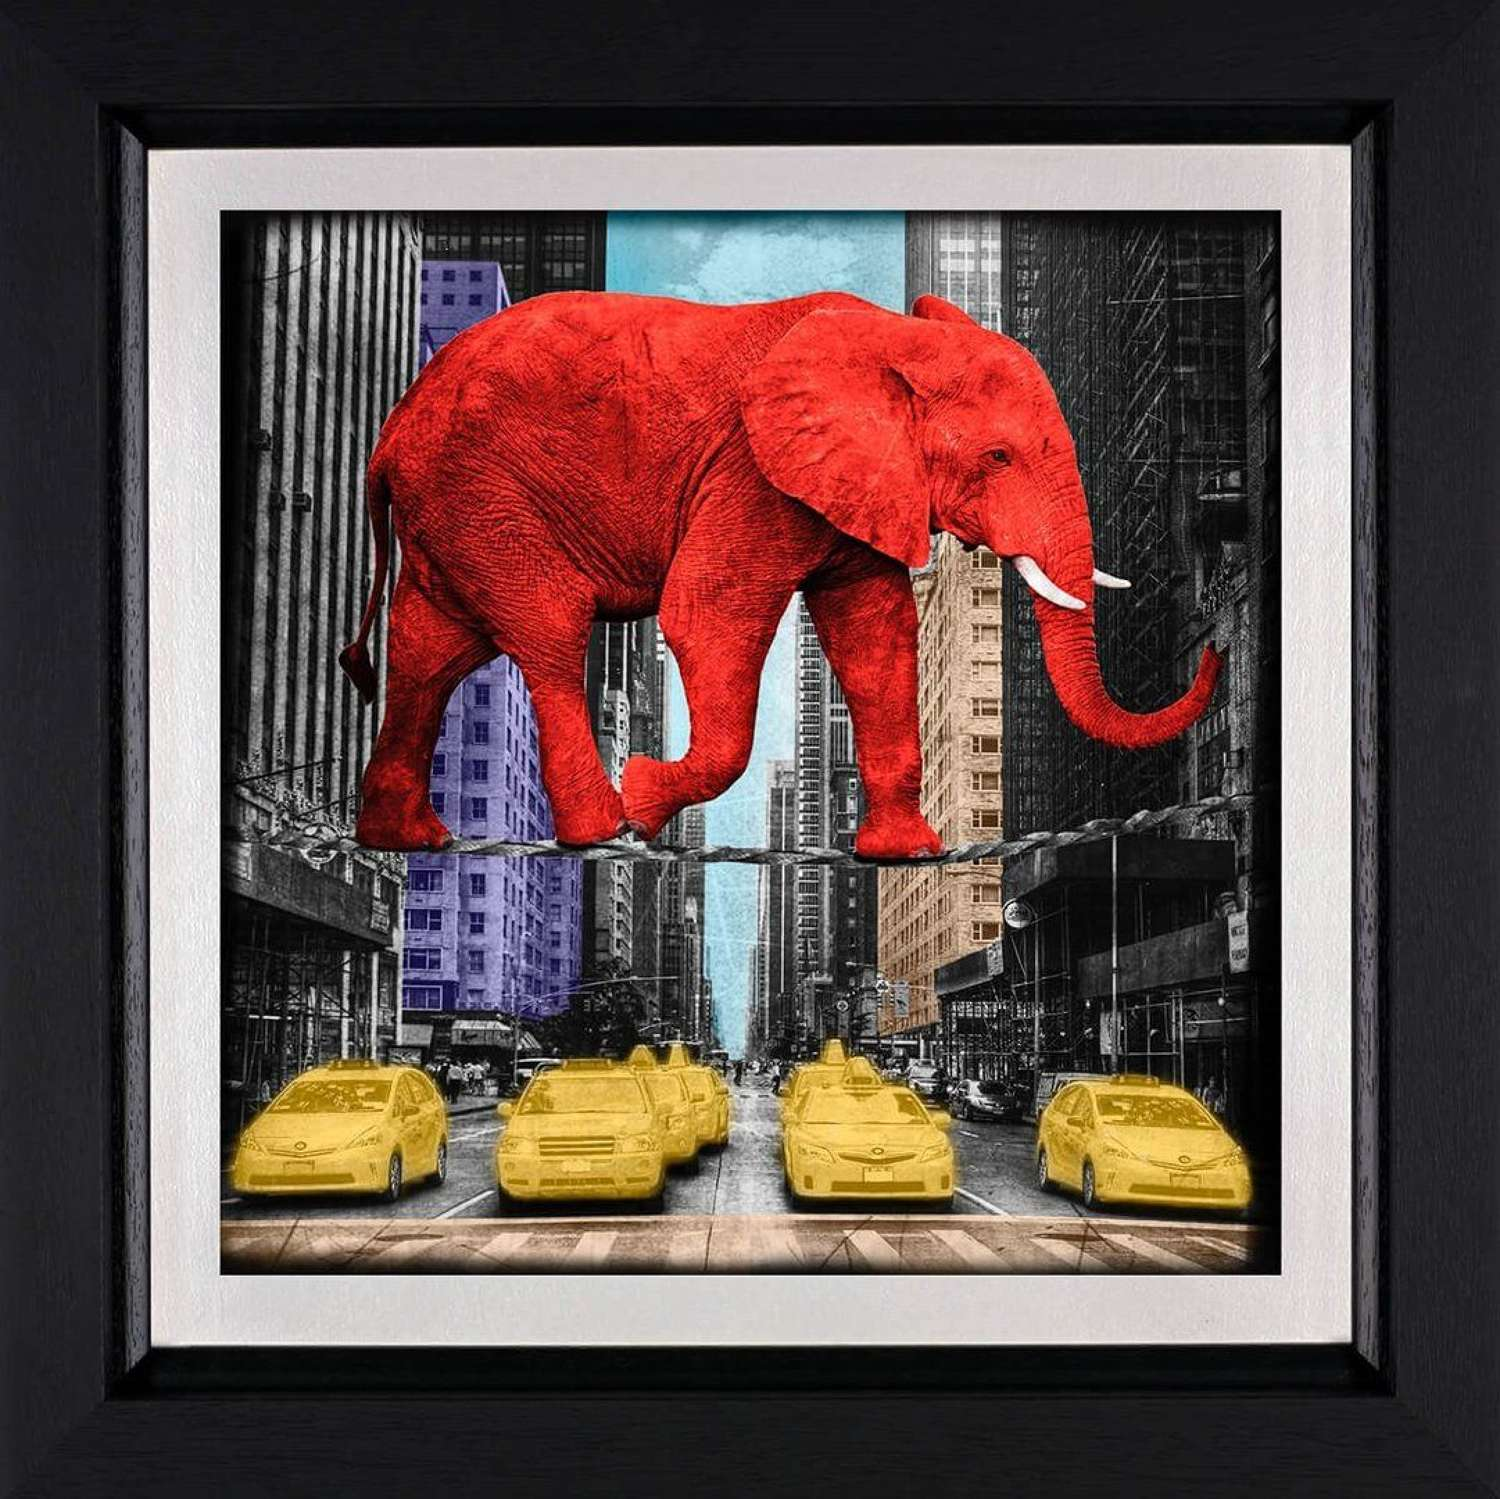 Crossing 5th Avenue - Framed Art Print by Lars Tunebo